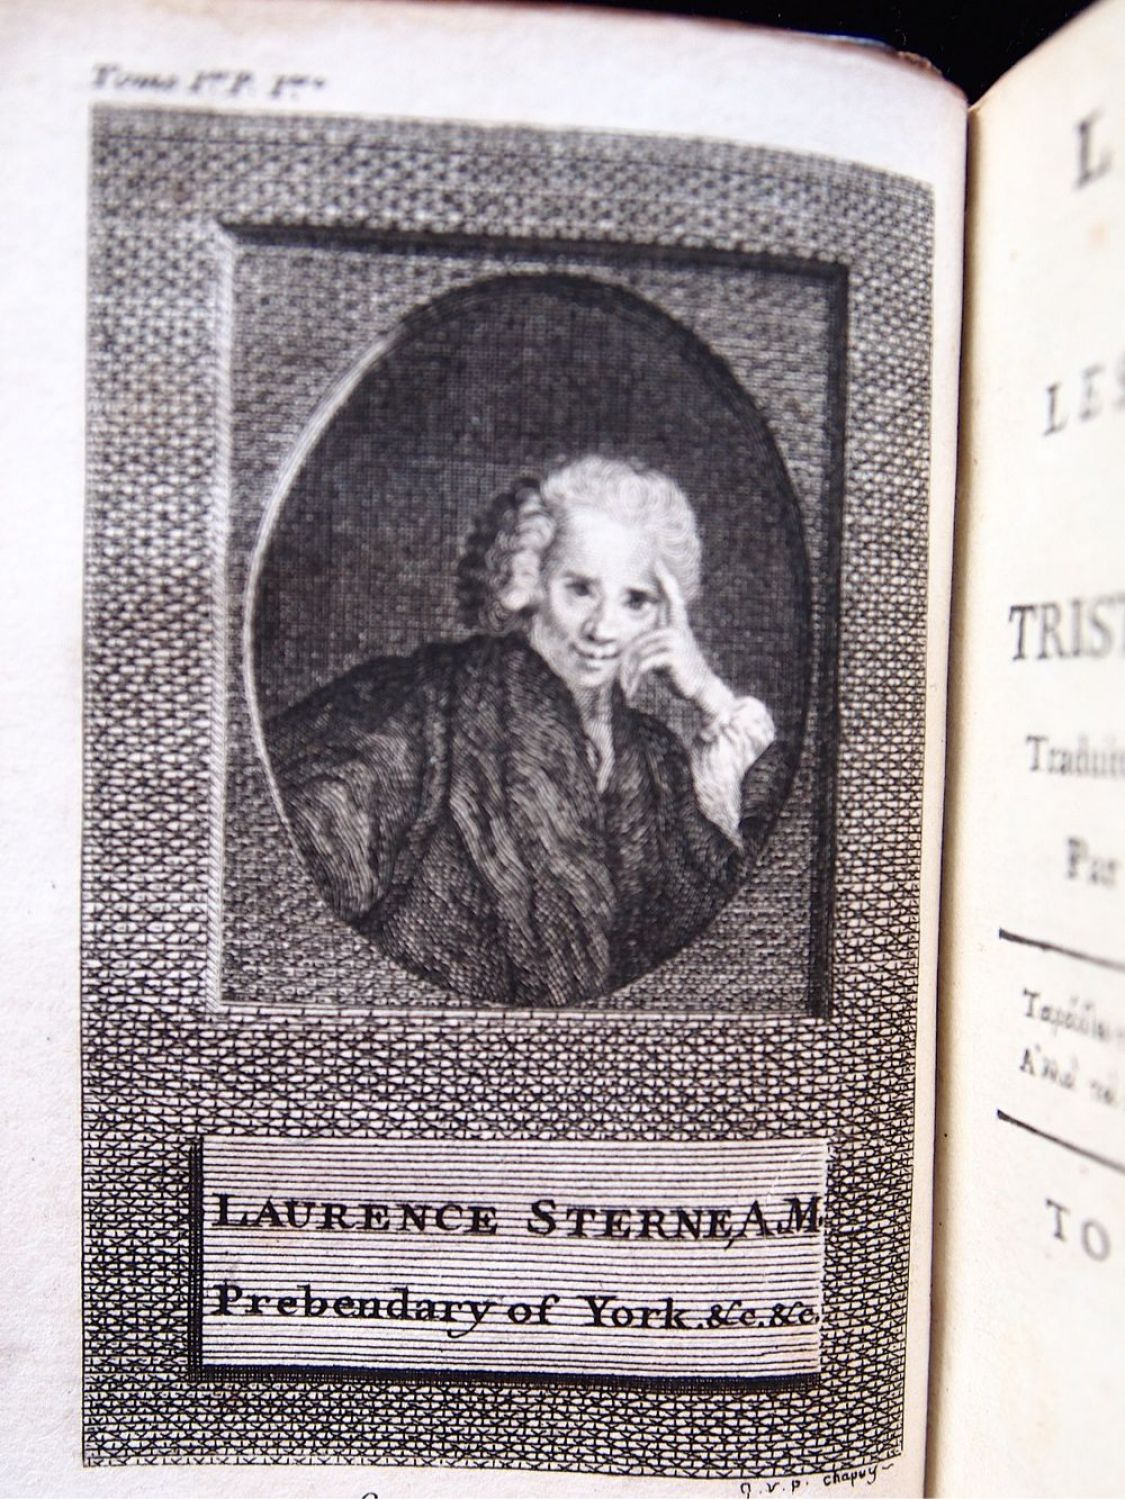 tristram shandy essay questions The life and opinions of tristram shandy, laurence - : filling the canvas: tristram shandy's portrait of john locke.